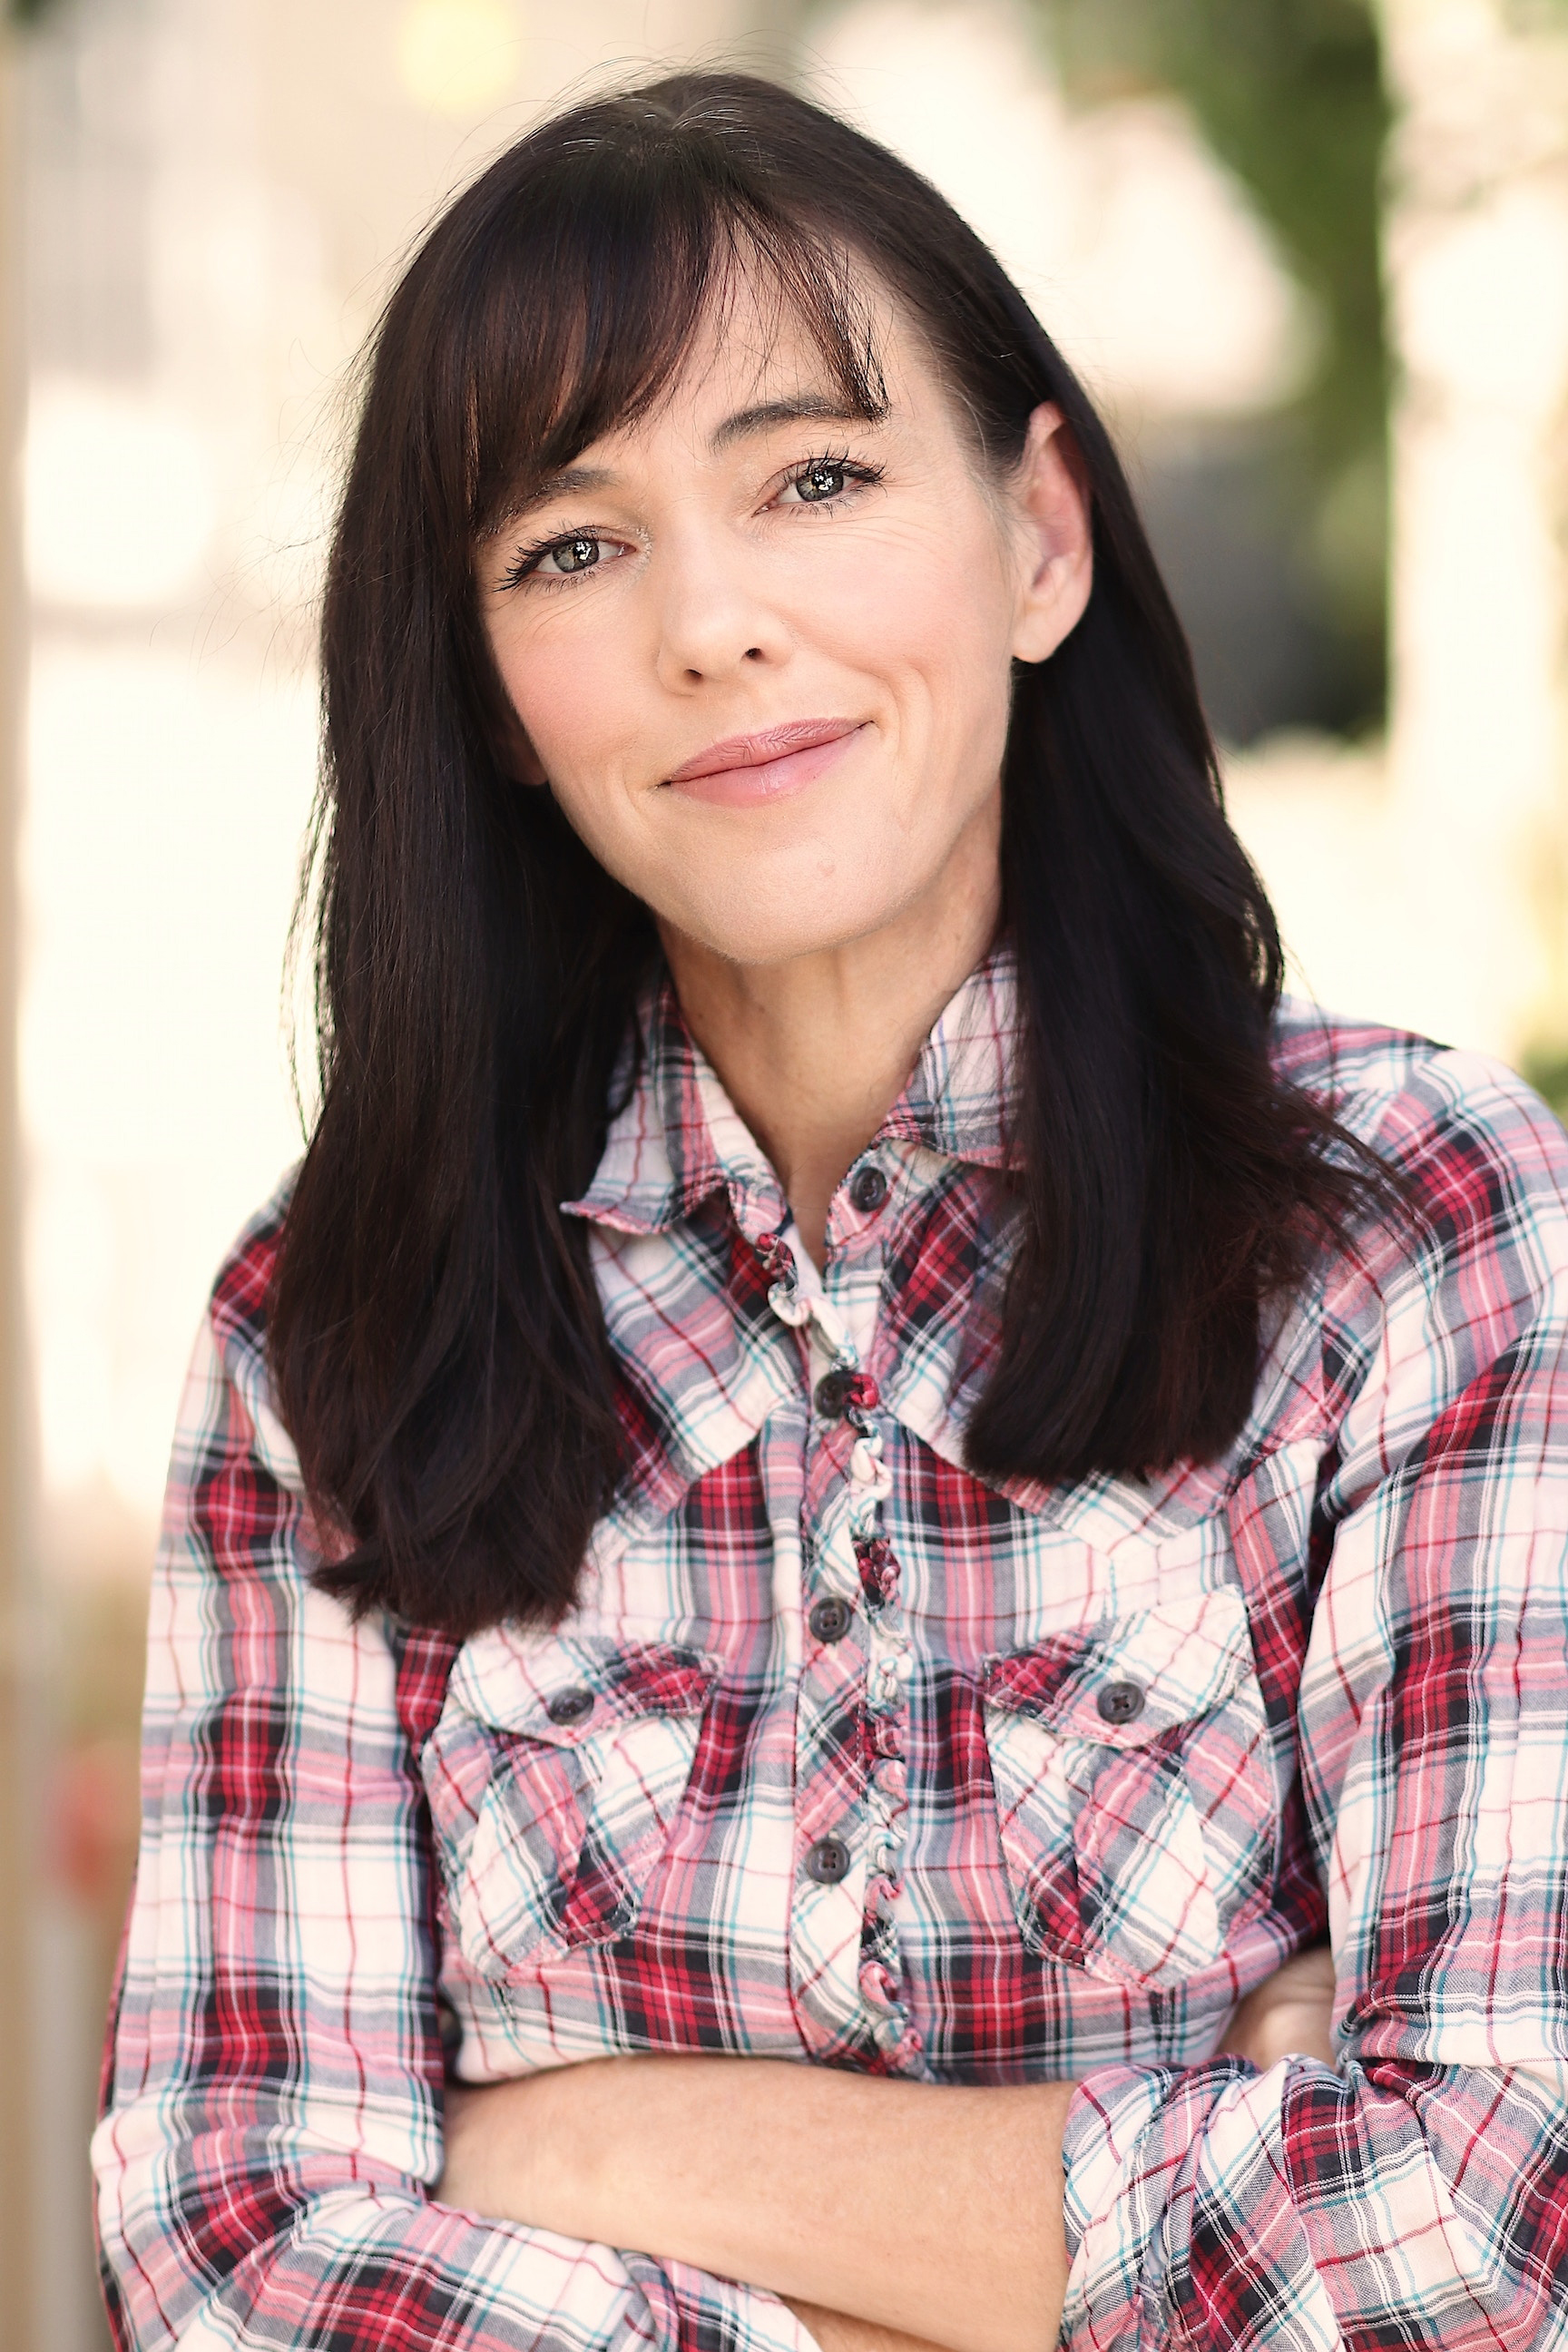 A beautiful middle-aged woman in a plaid flannel shirt